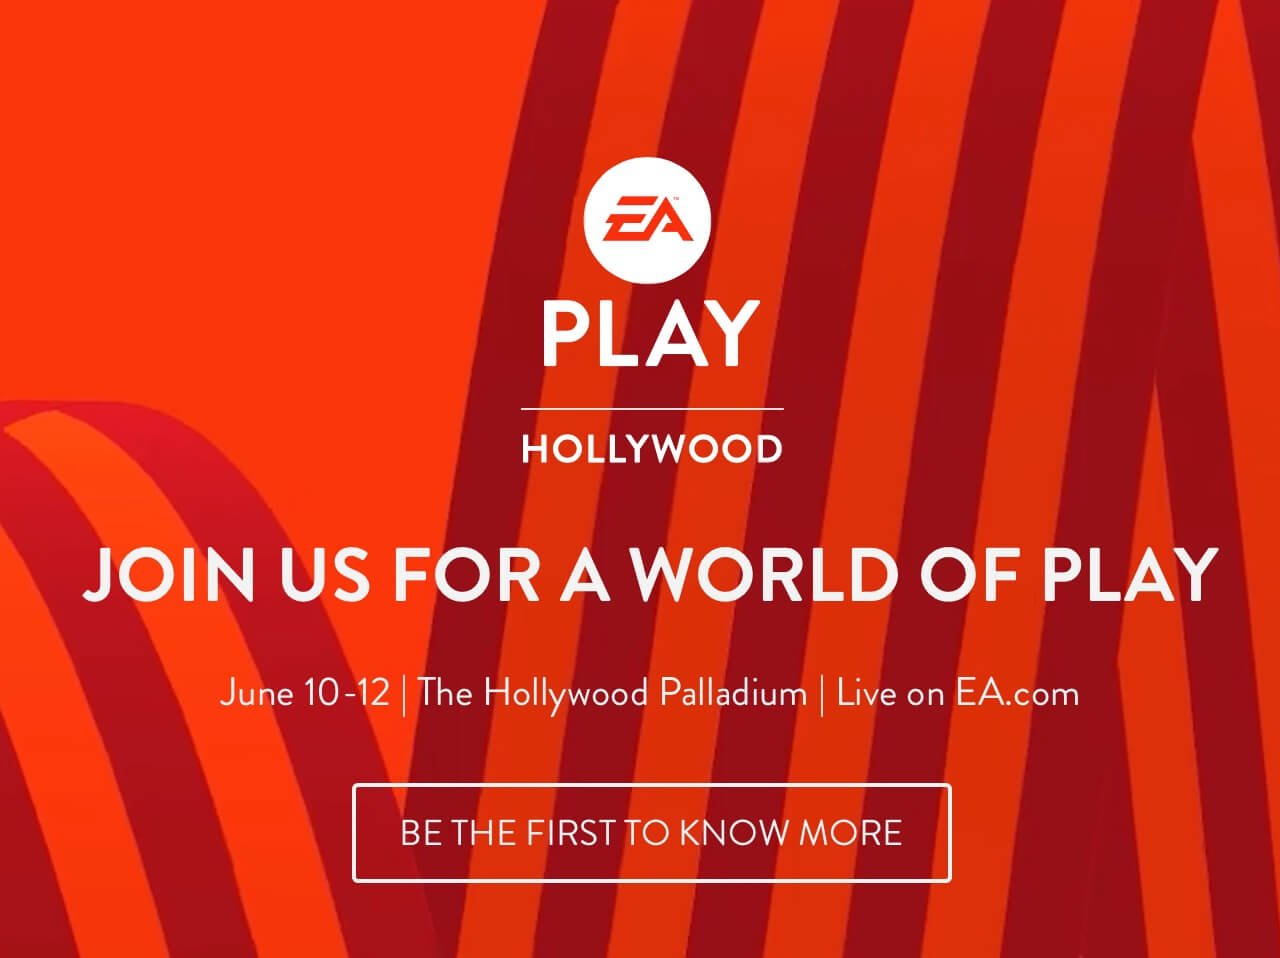 E3 Bethesdaland and EA Play